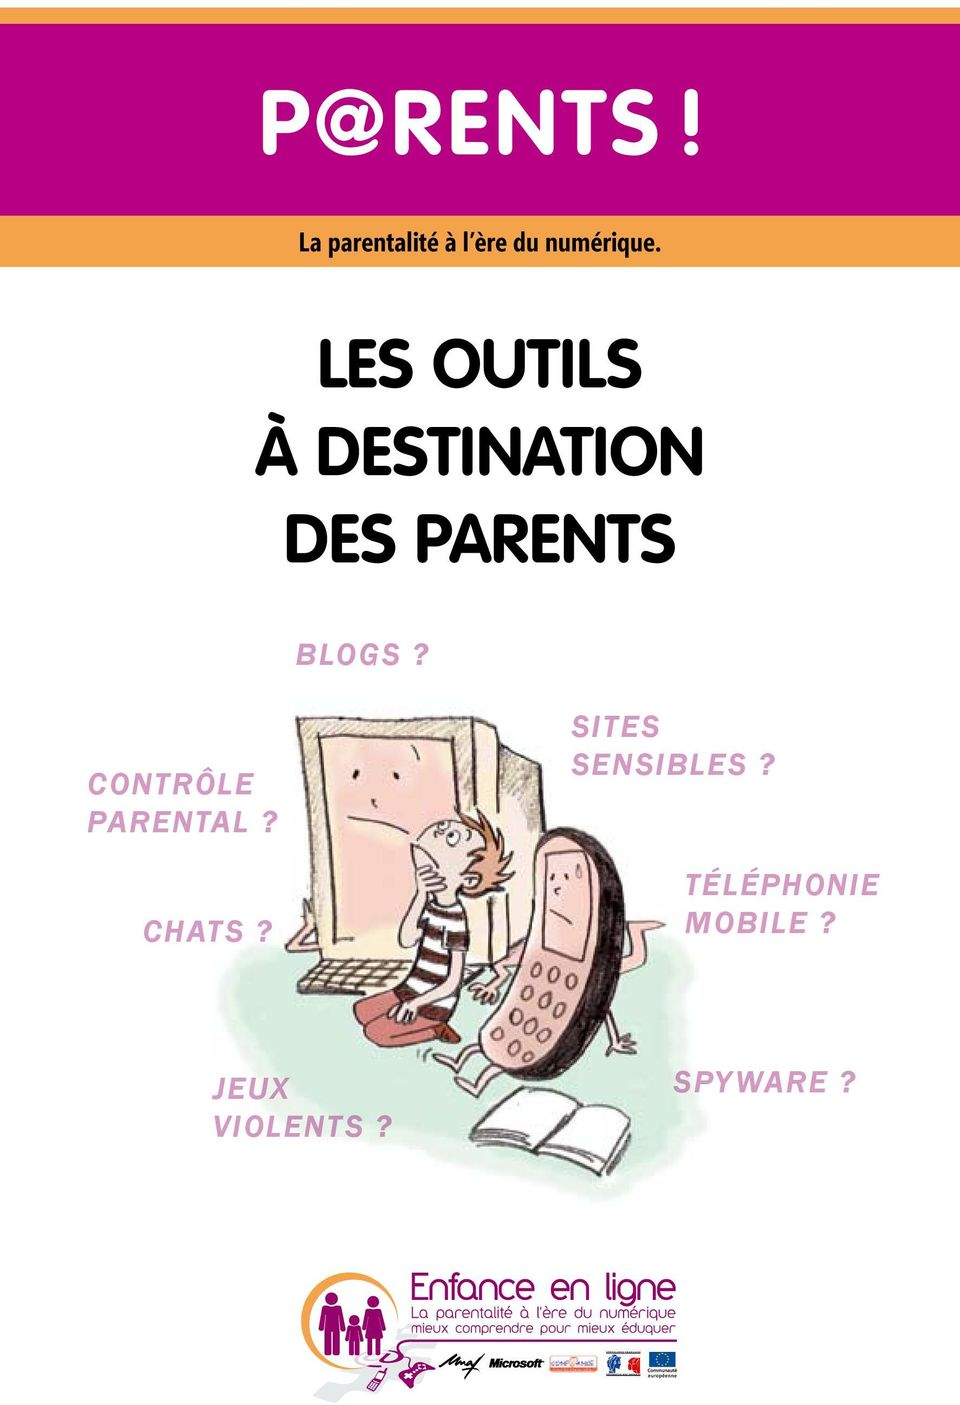 Les outils à destination des parents blogs?